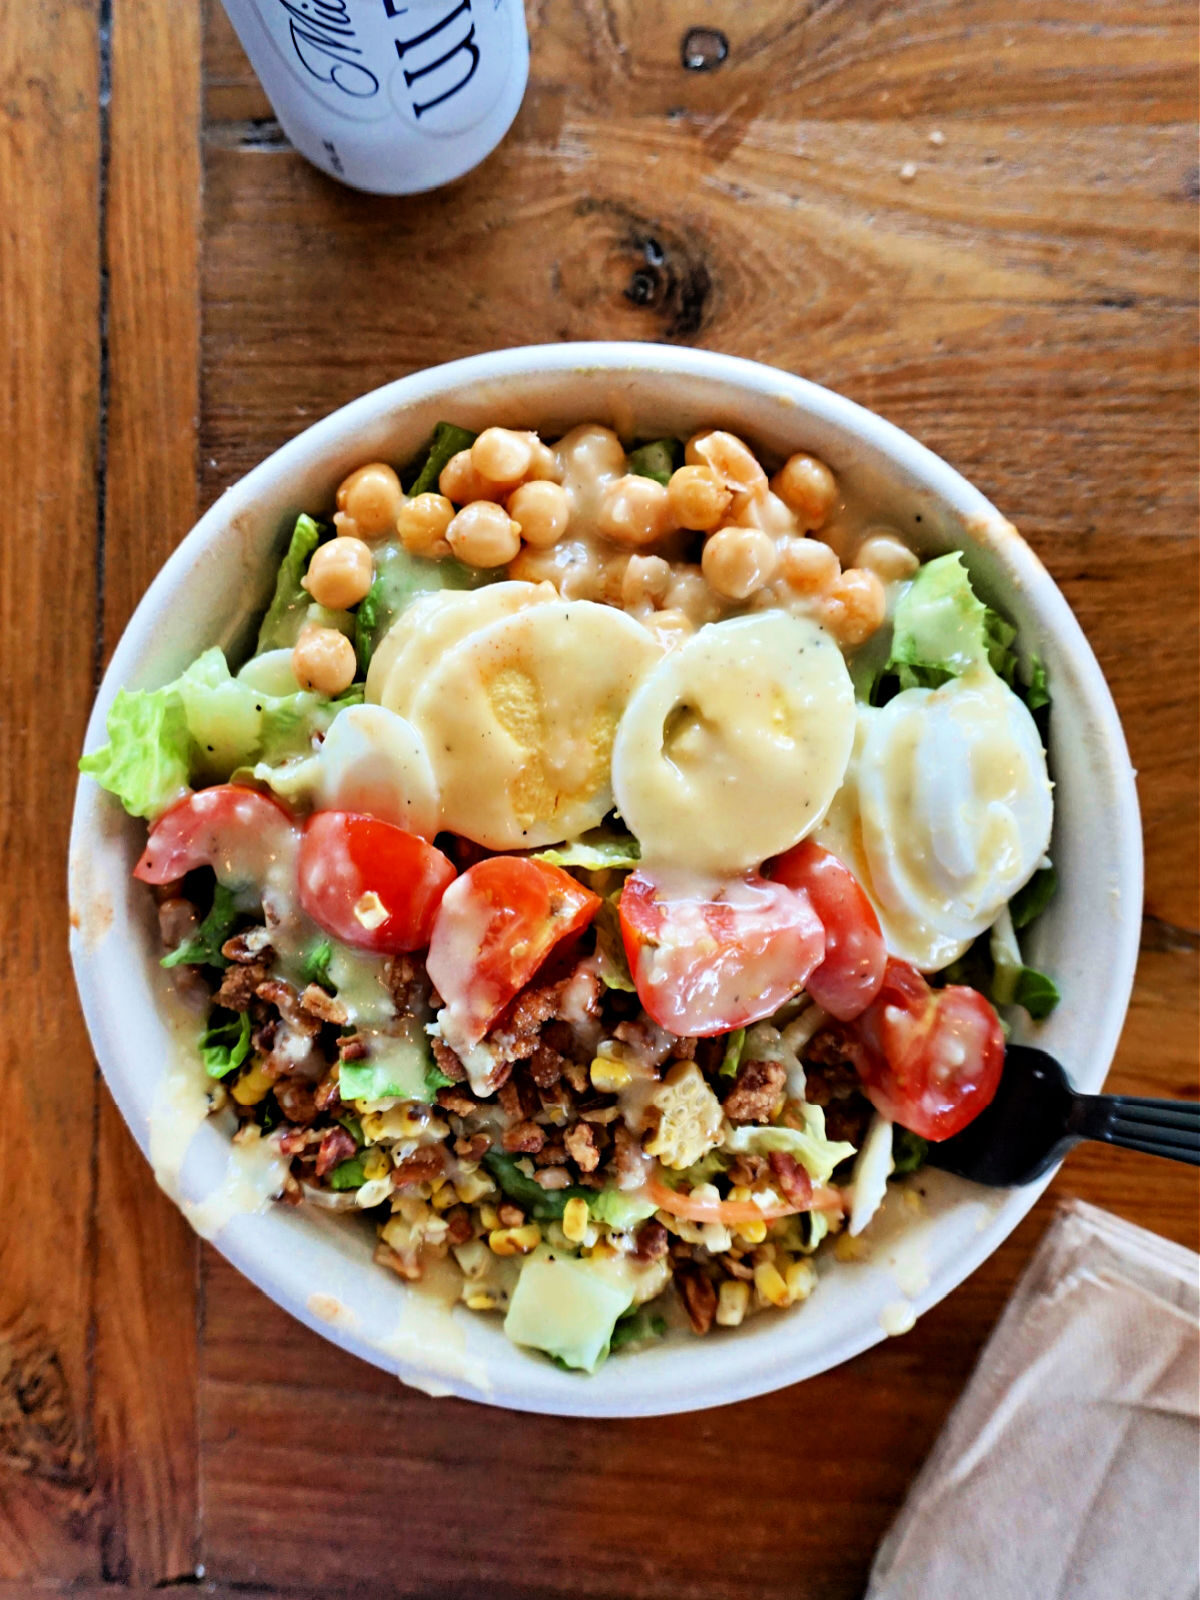 Bowl of grains, chick peas, tomatoes, cucumbers, lettuce, and hard boiled eggs.